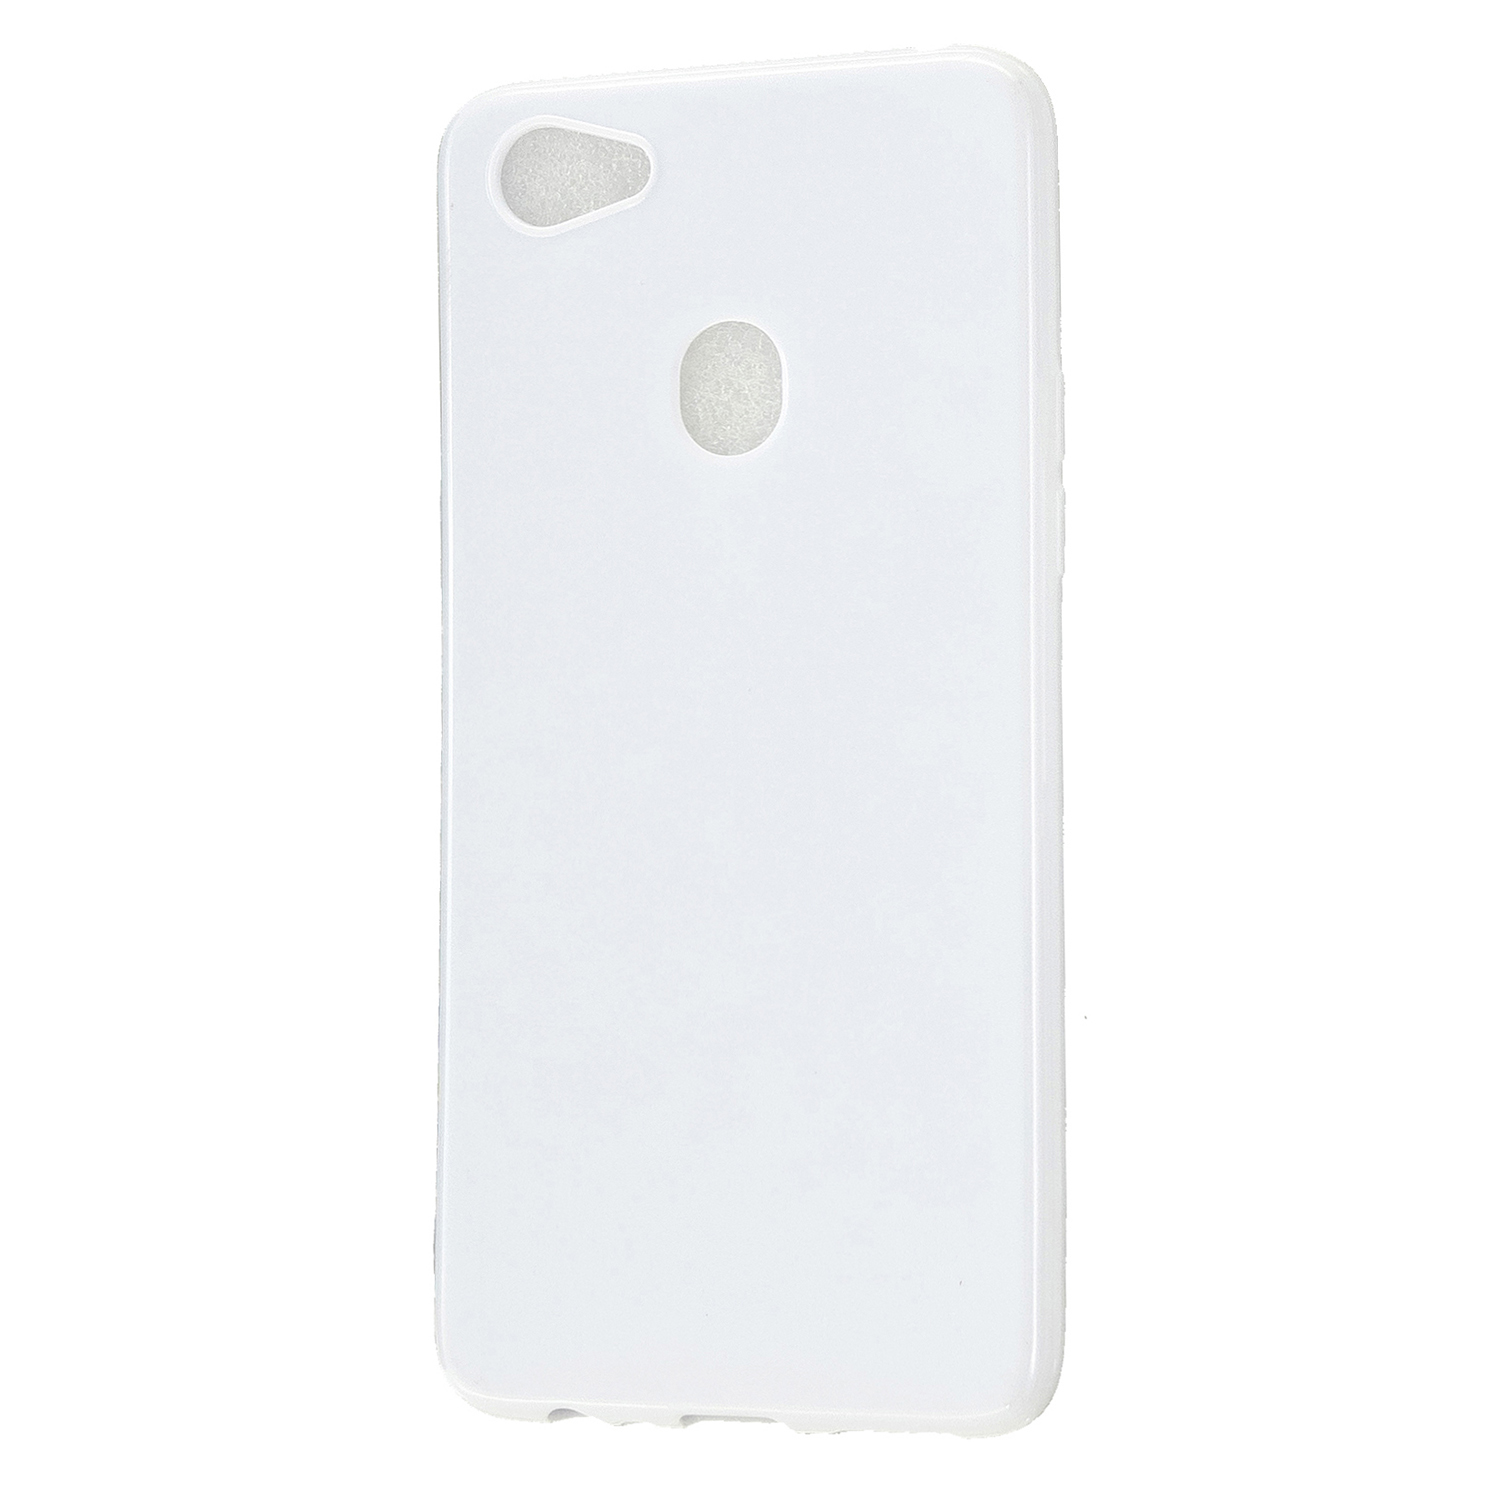 For OPPO F5/F7 Cellphone Cover Soft TPU Mobile Phone Case Screen Protector with Shock Absorption Technology Milk white